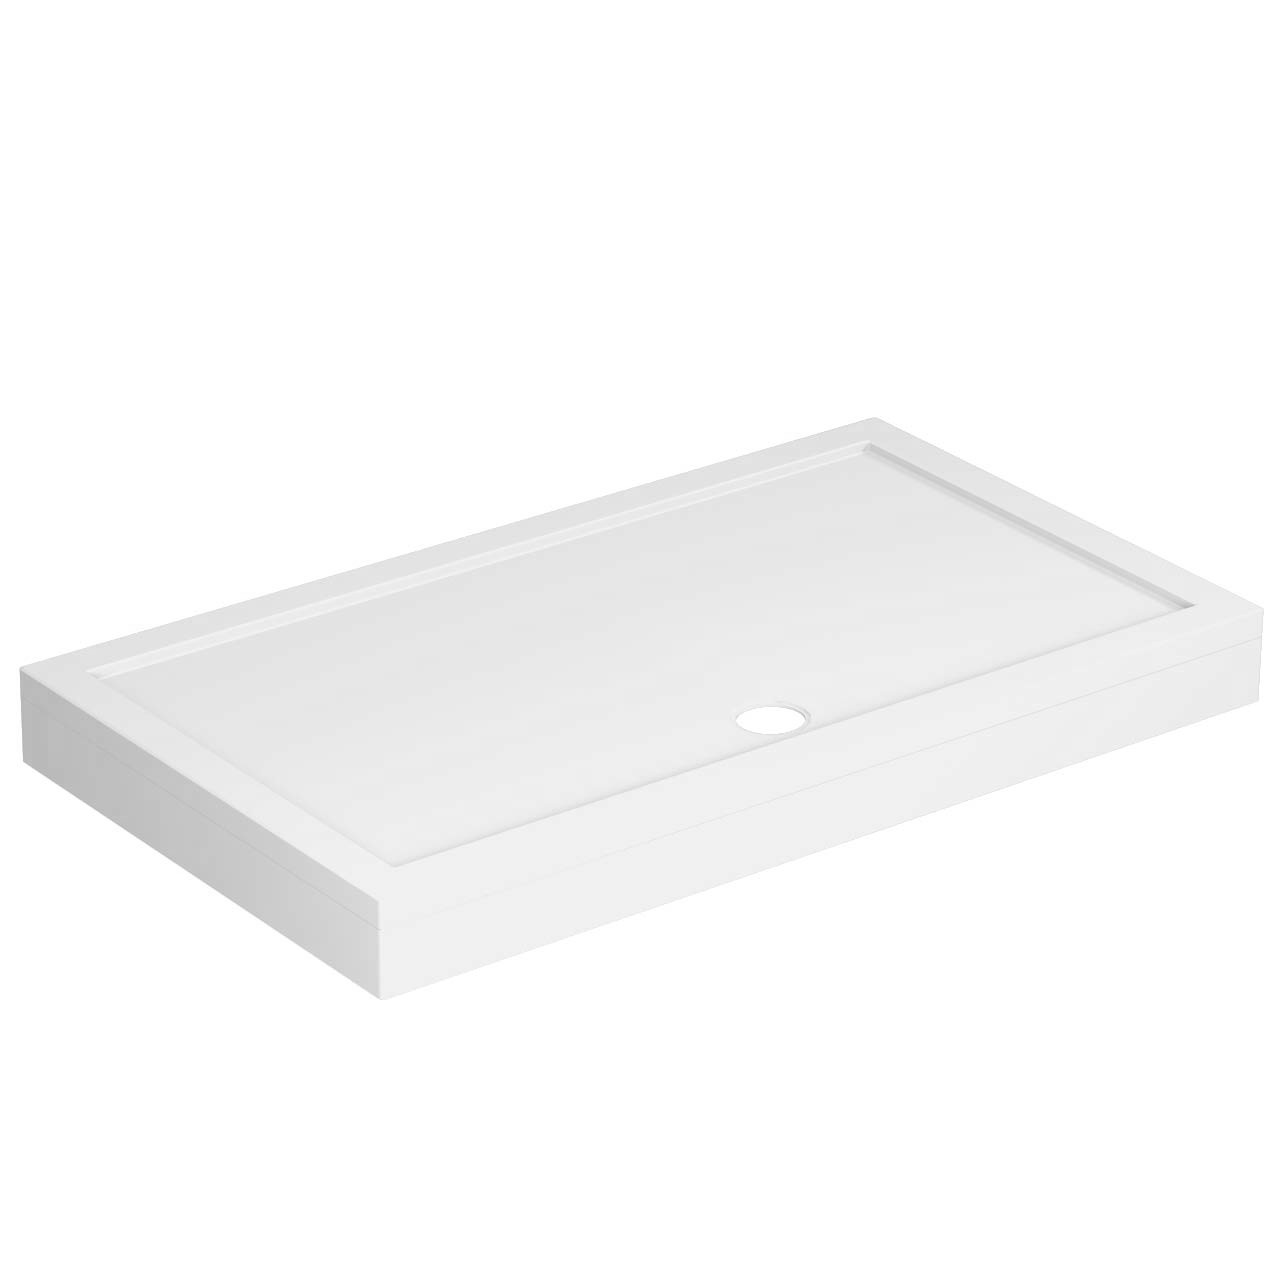 40mm Pearlstone 1400 x 800 Rectangular Shower Tray & Plinth